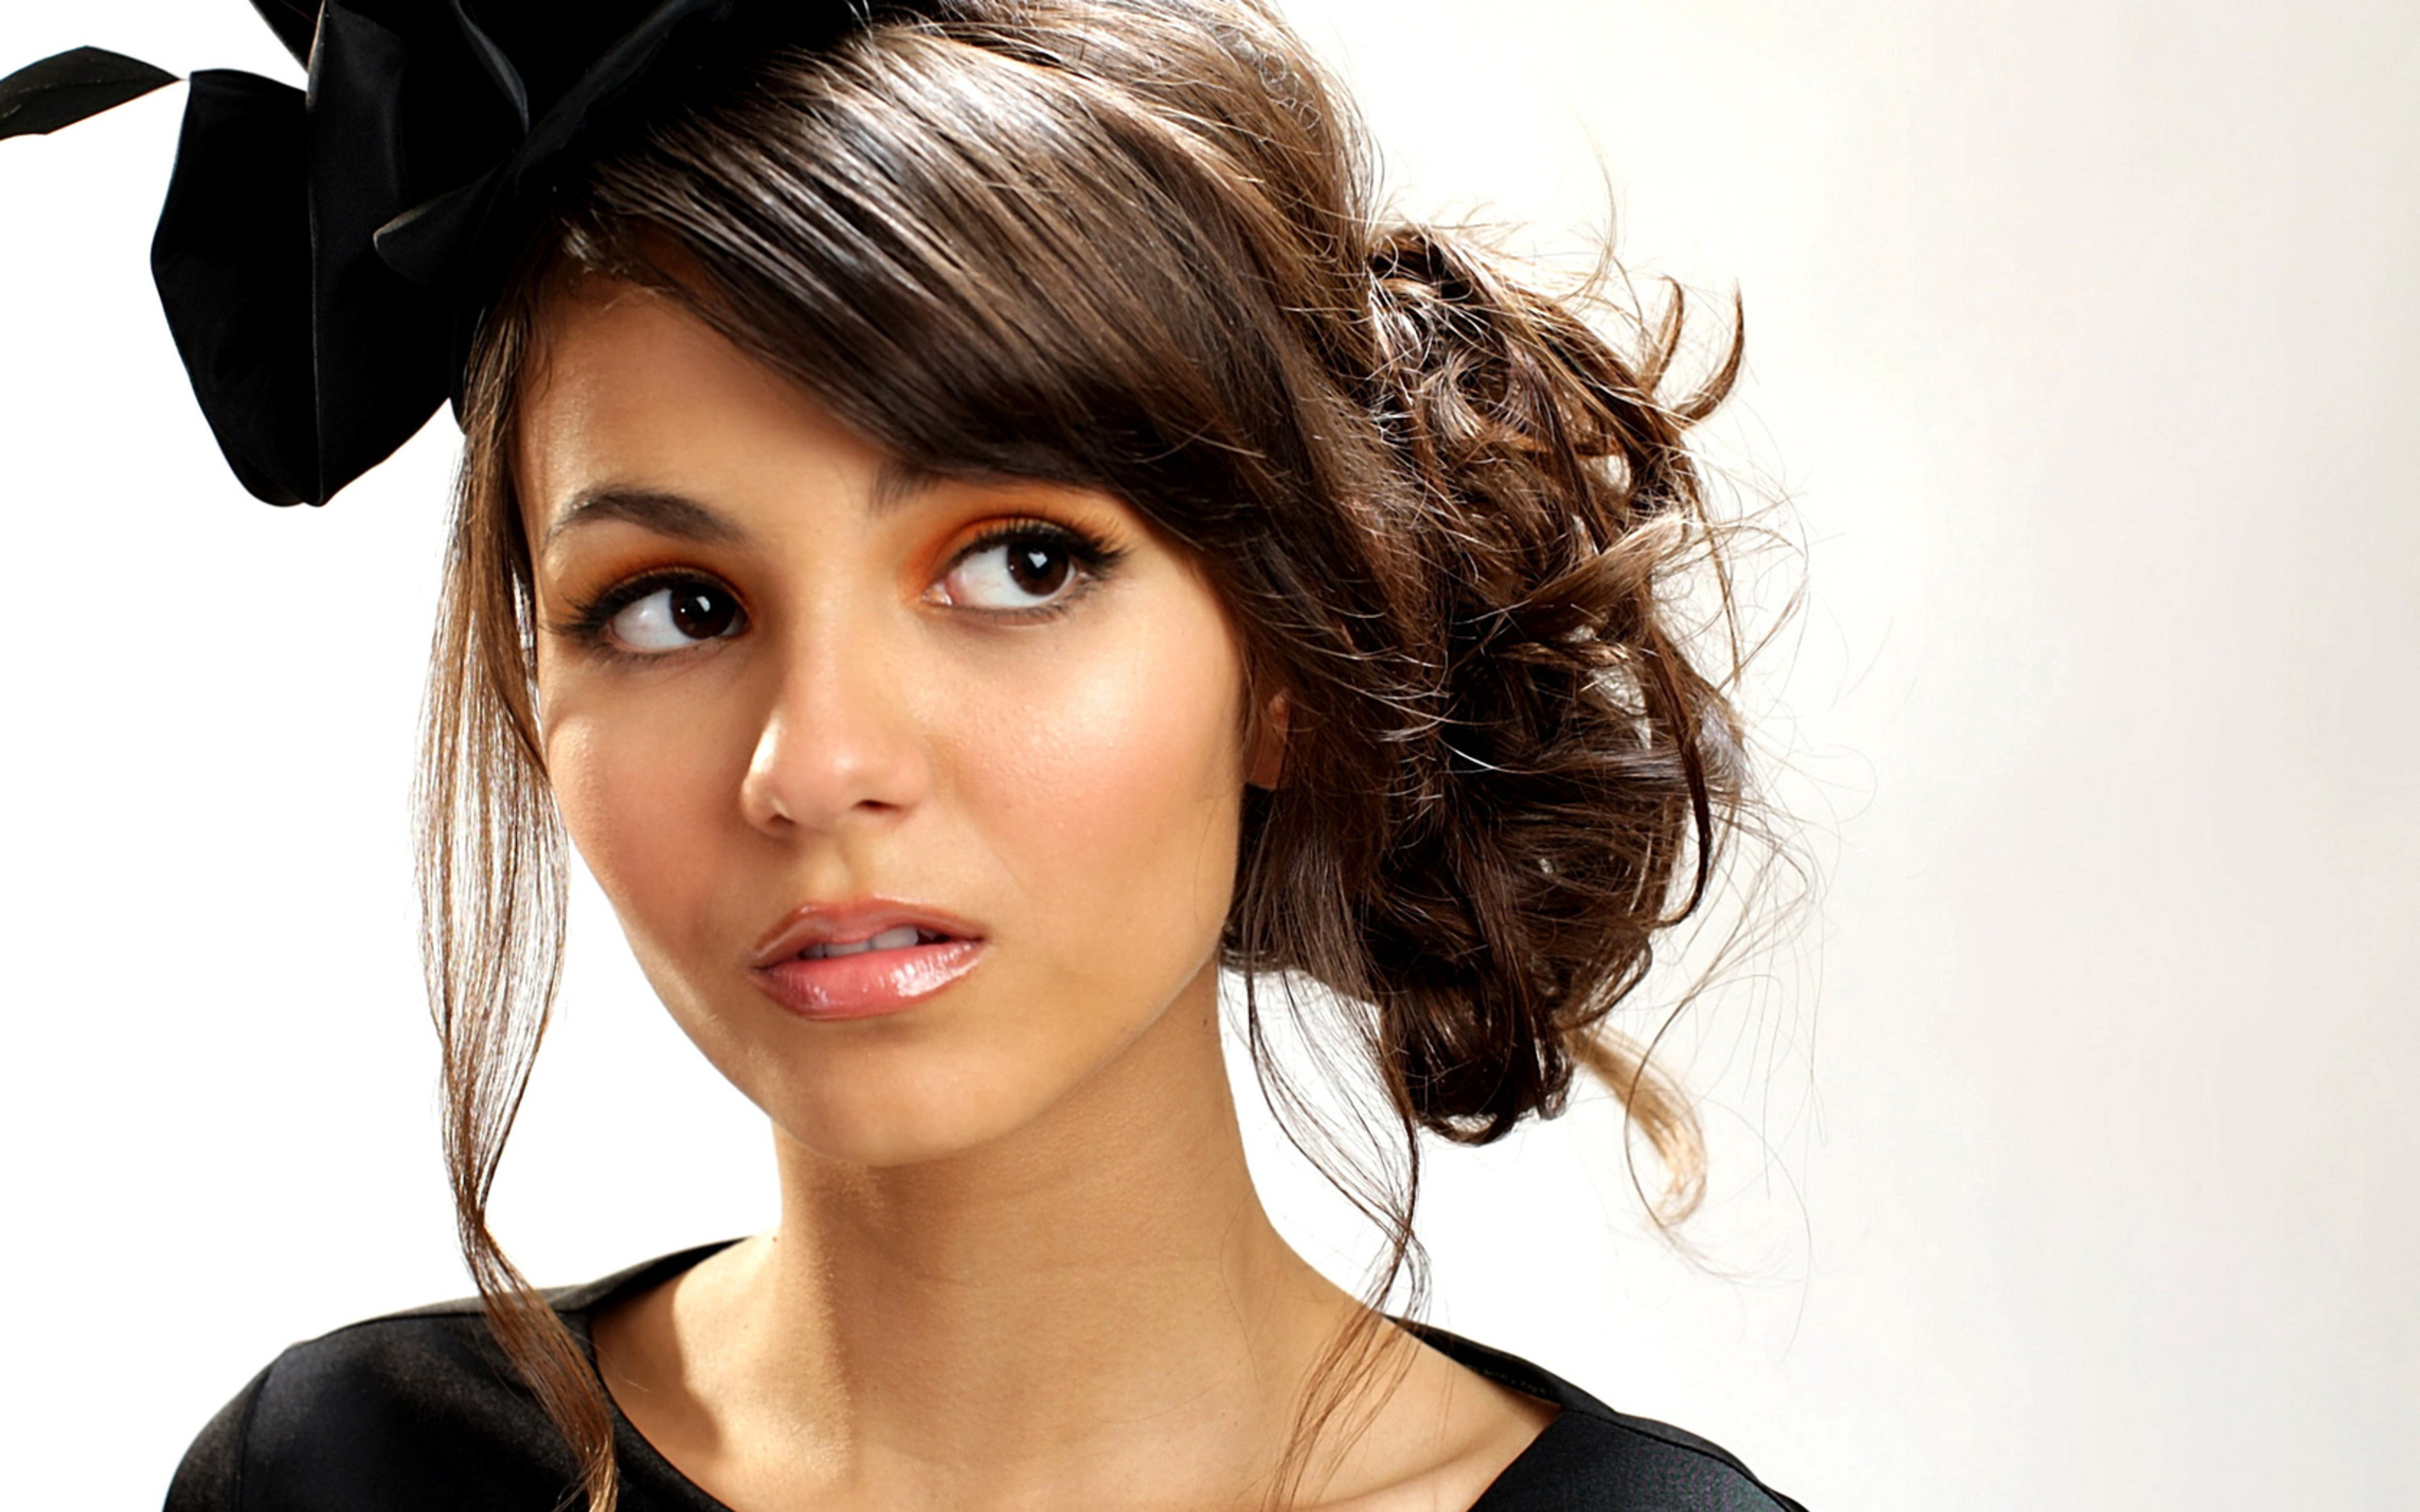 2560x1600 - Victoria Justice Wallpapers 22